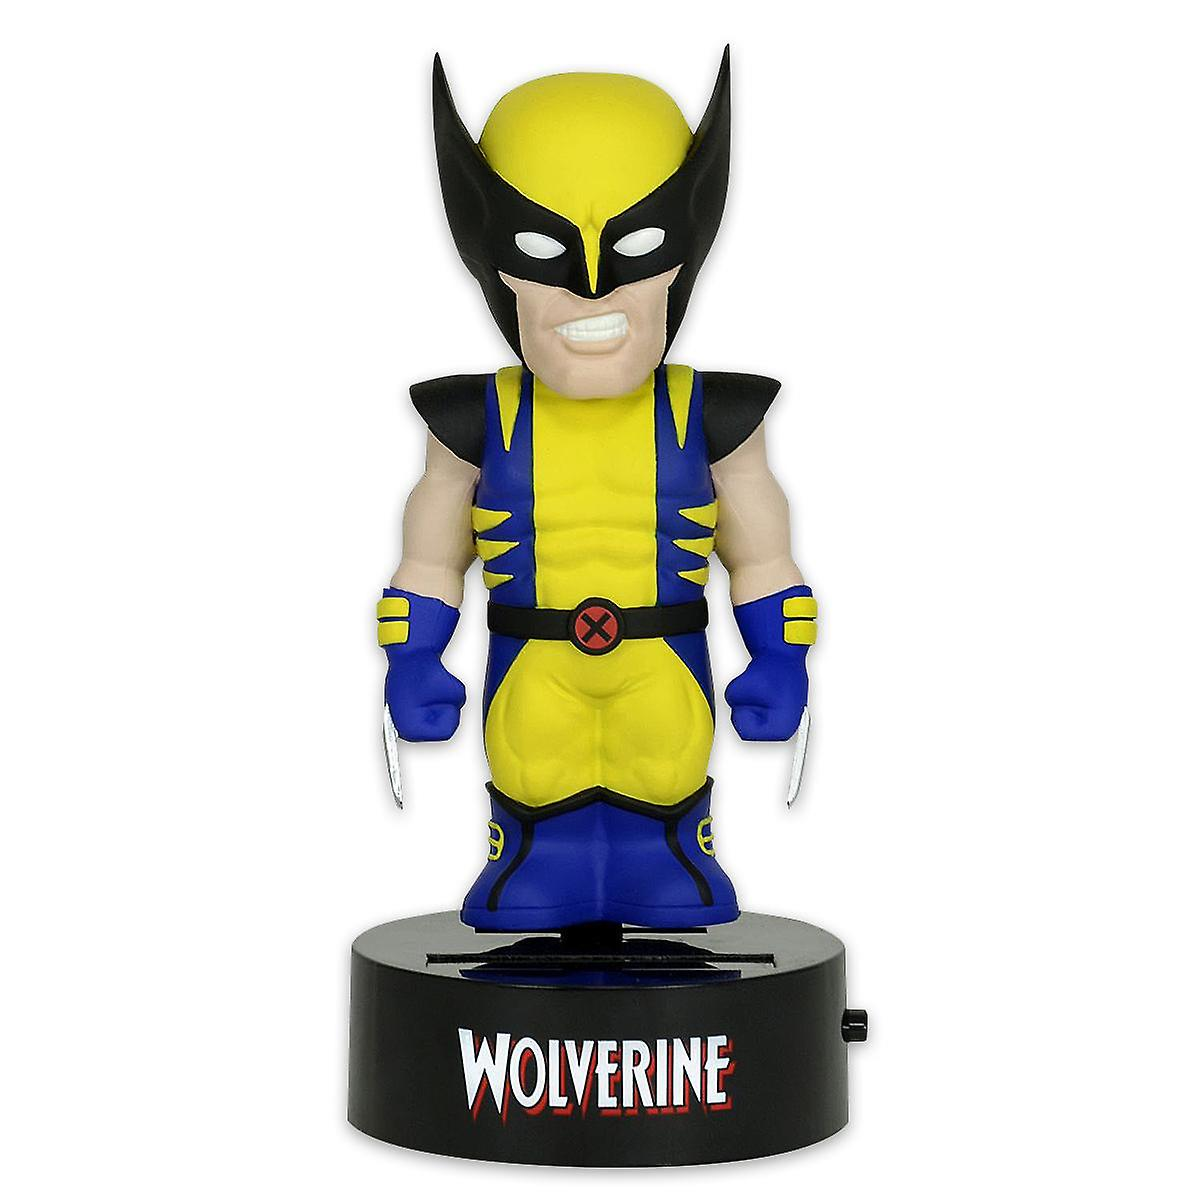 Marvel body knockout Wolverine Aalok figure made of plastic, solar powered.